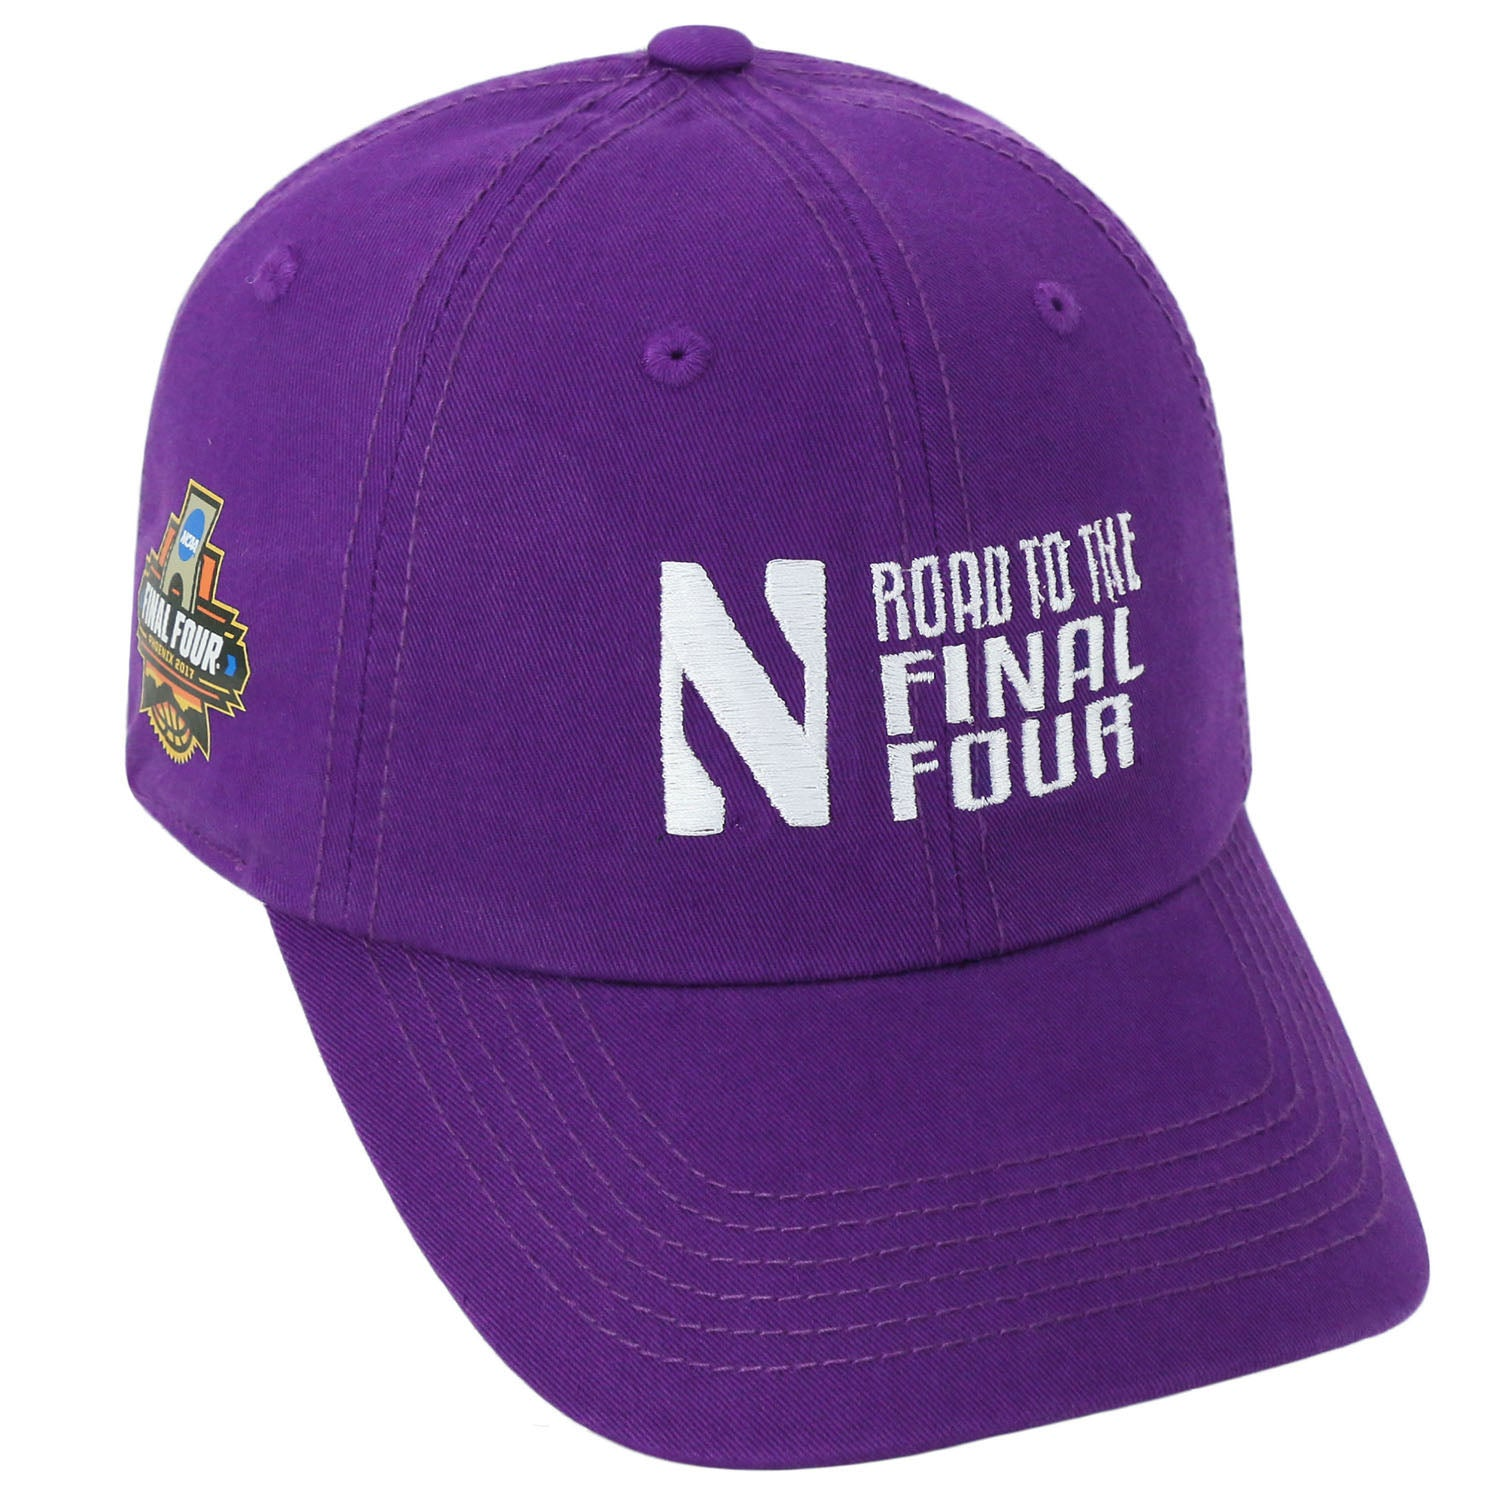 sale retailer ccbb0 18df8 Northwestern Wildcats Road To The Final Four Hat – Northwestern Official  Store